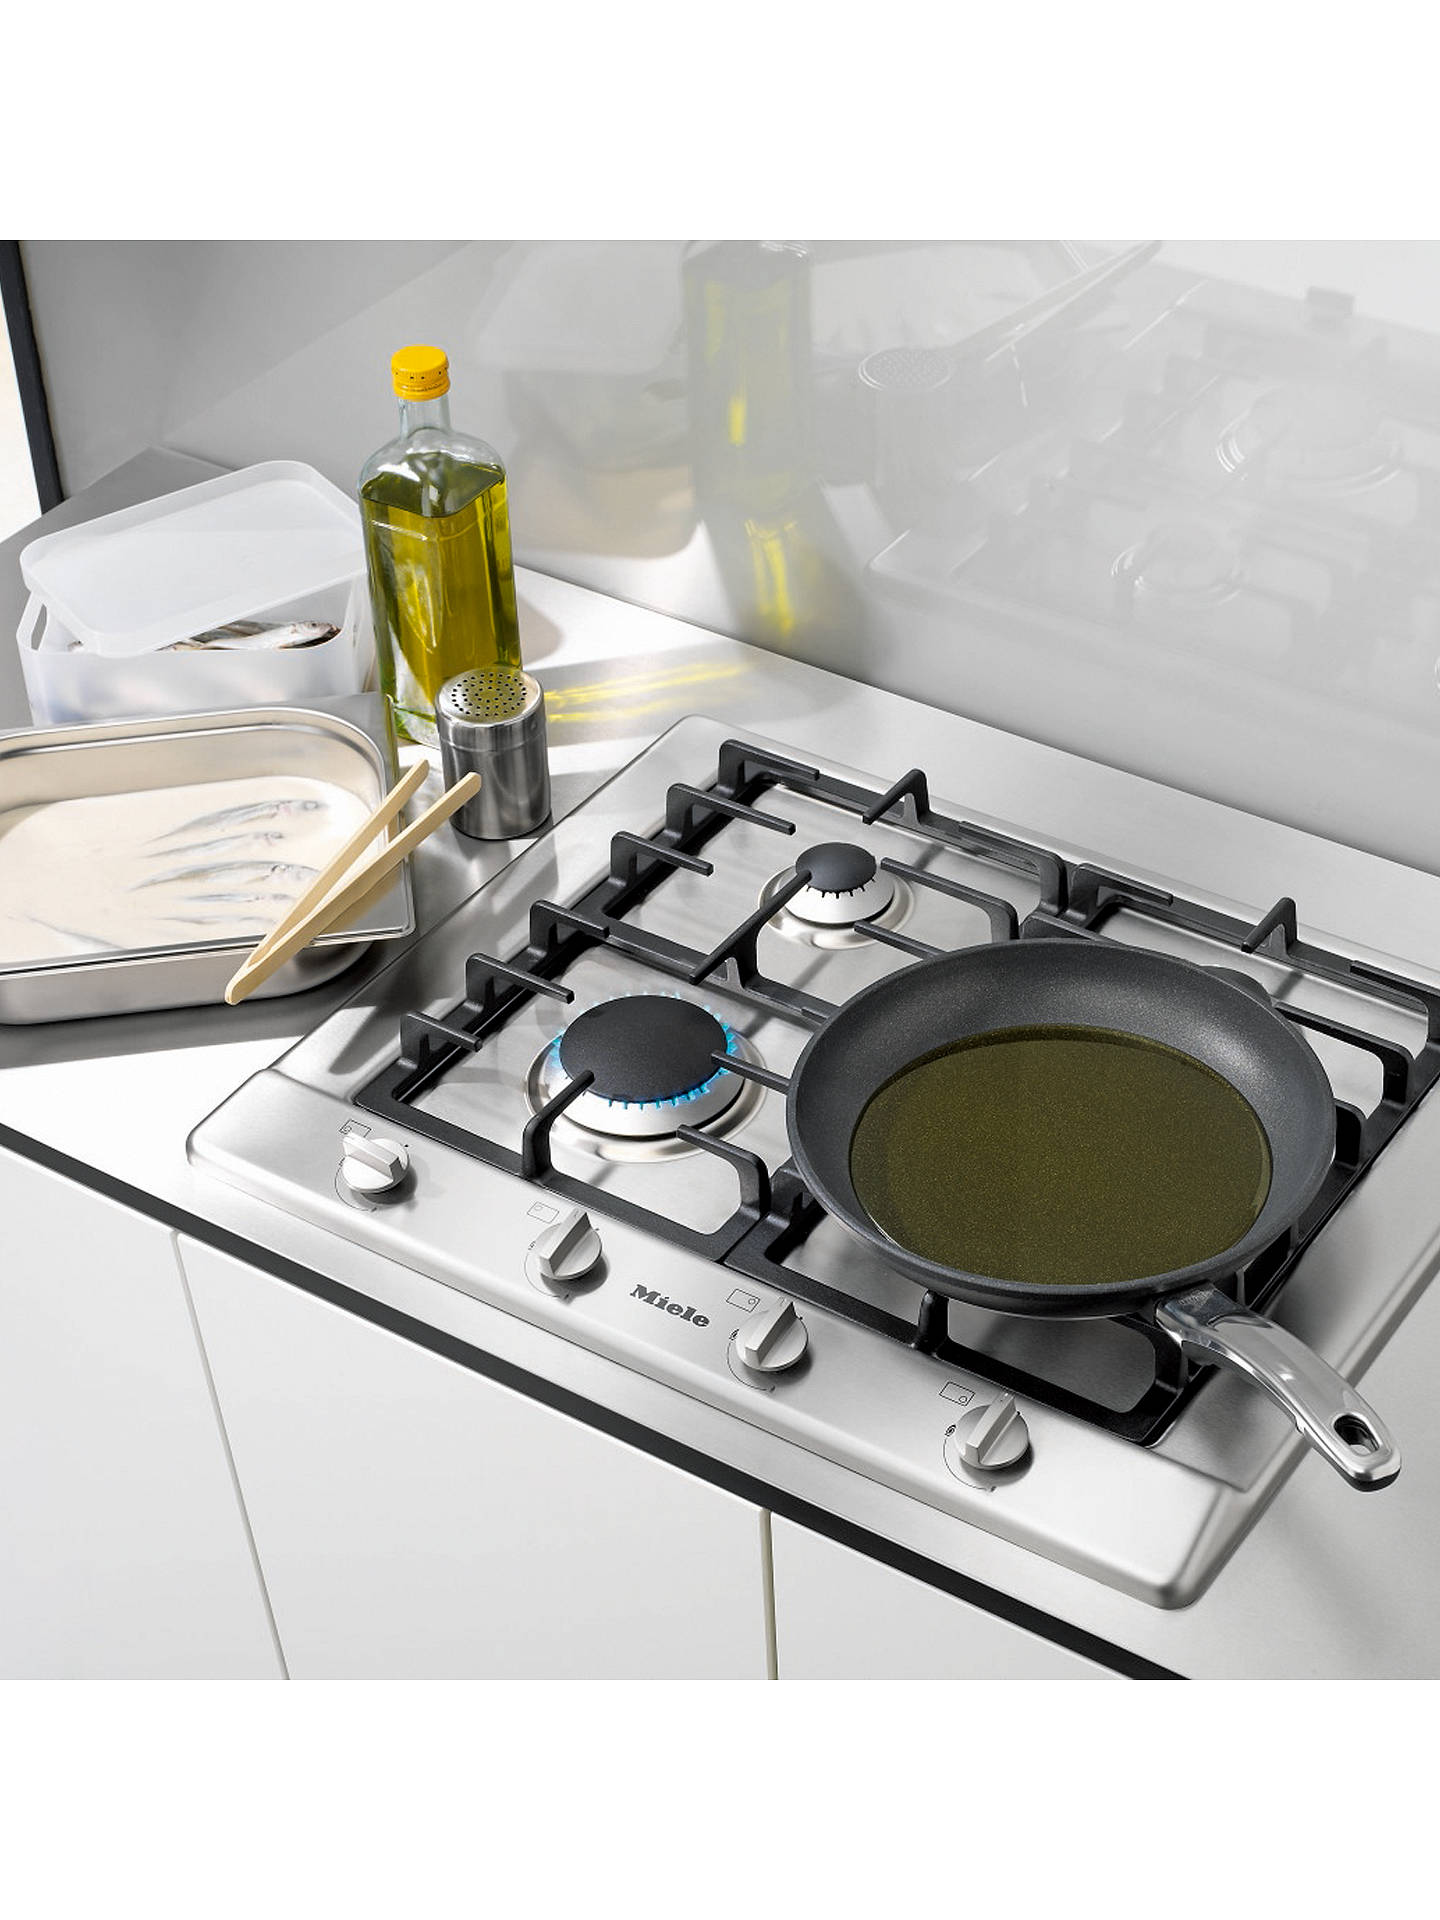 BuyMiele KM2010 Gas Hob, Stainless Steel Online at johnlewis.com